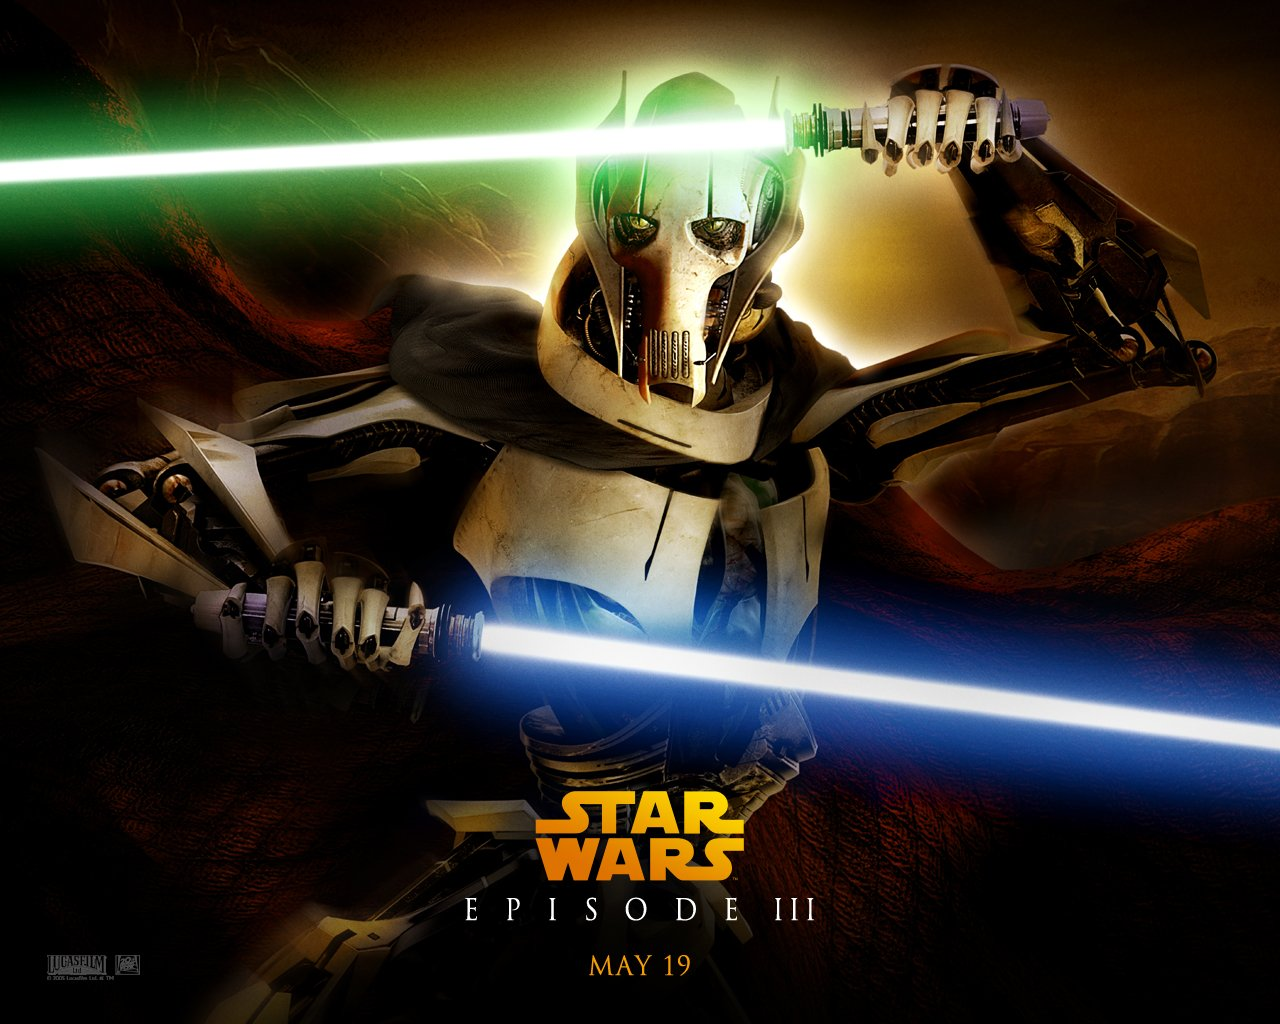 STAR WAR WALLPAPER Star War Wallpapers 1280x1024